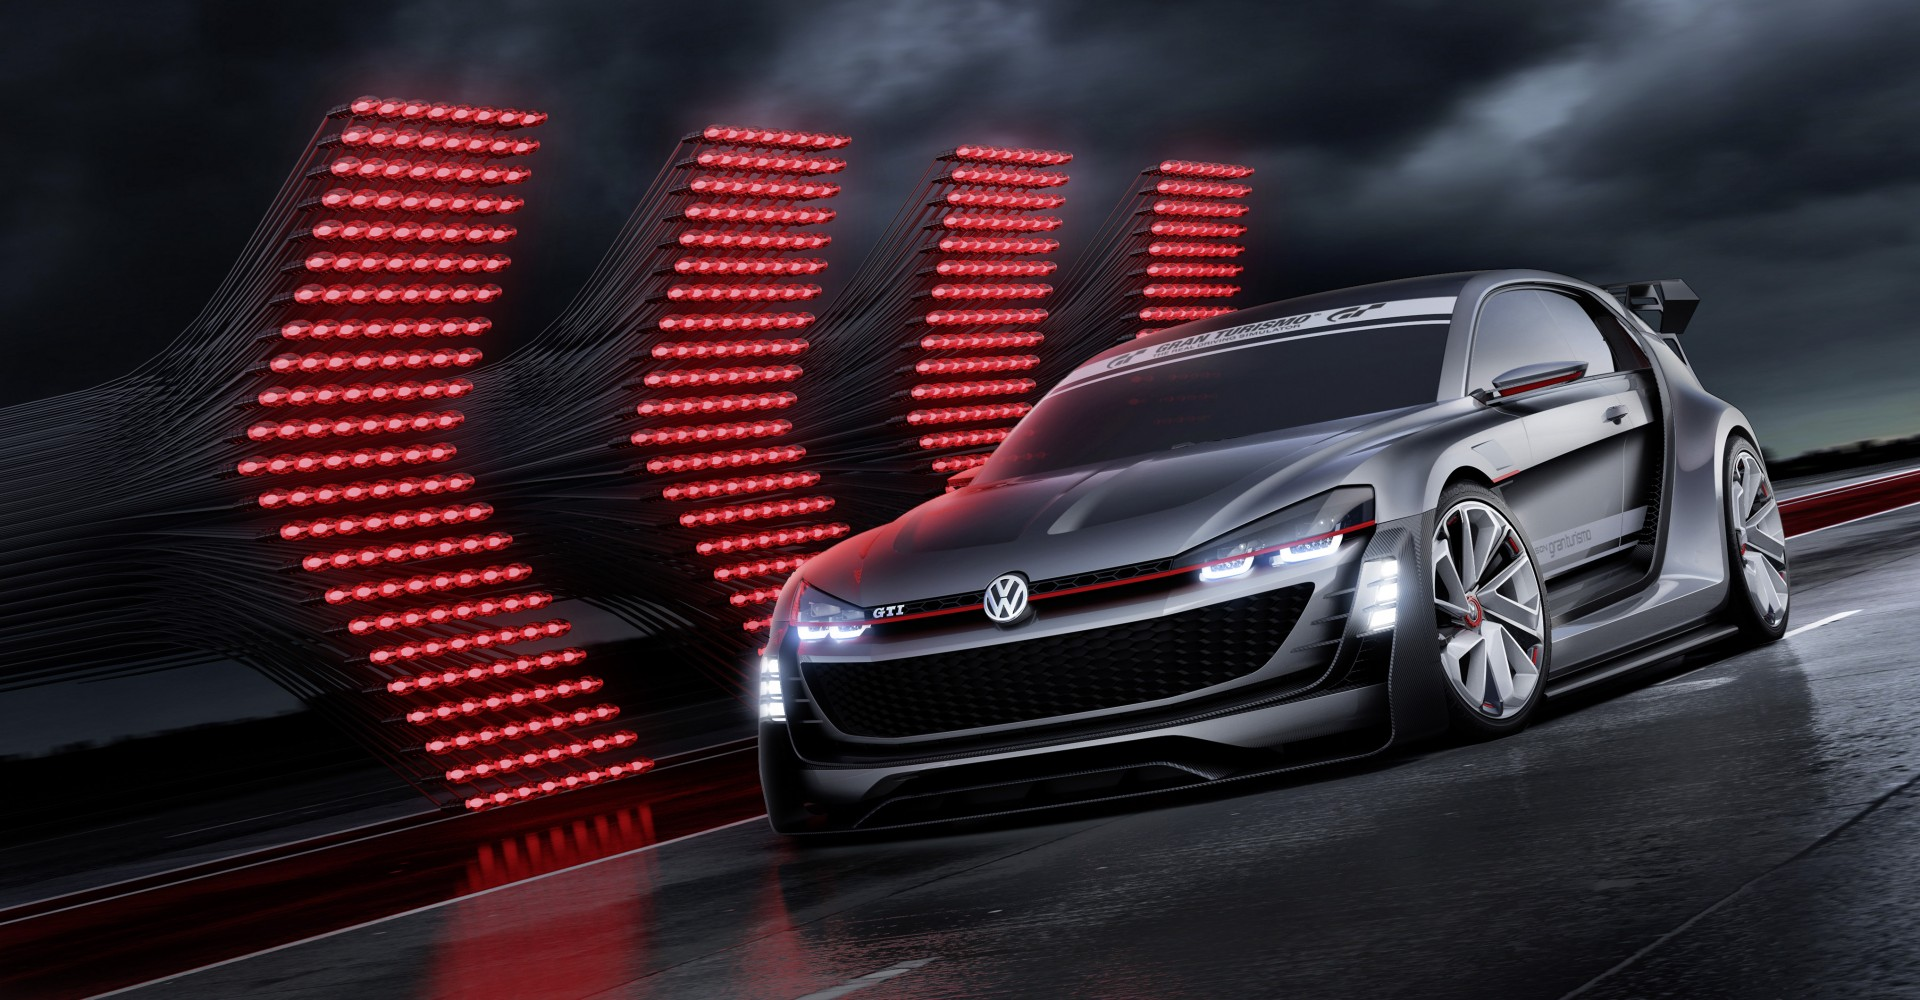 7 Reasons Why VW Should Make The GTI Vision Gran Turismo Concept In Real Life